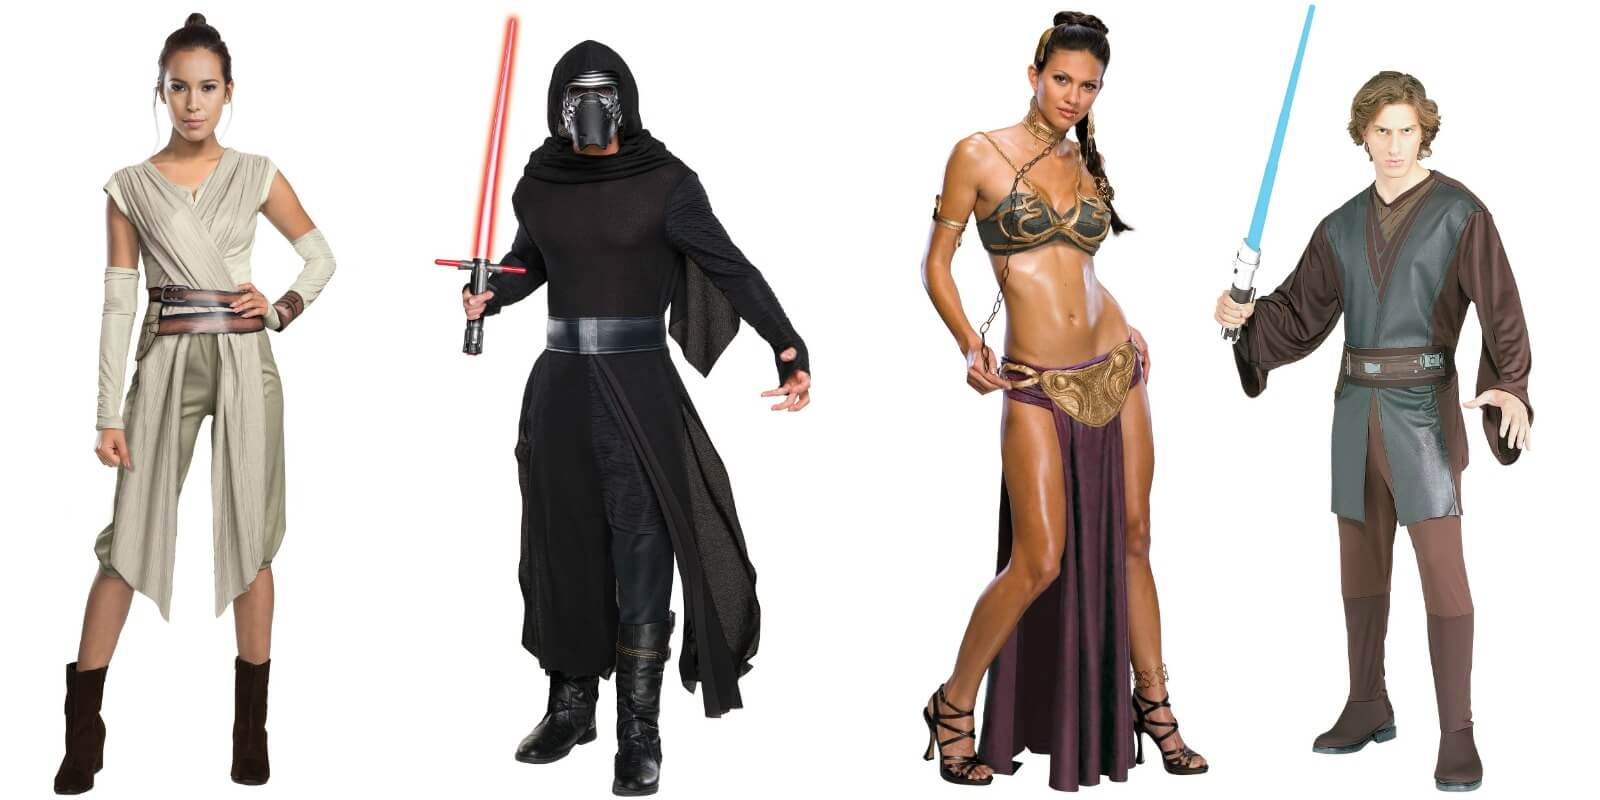 Star Wars Fandom Costume